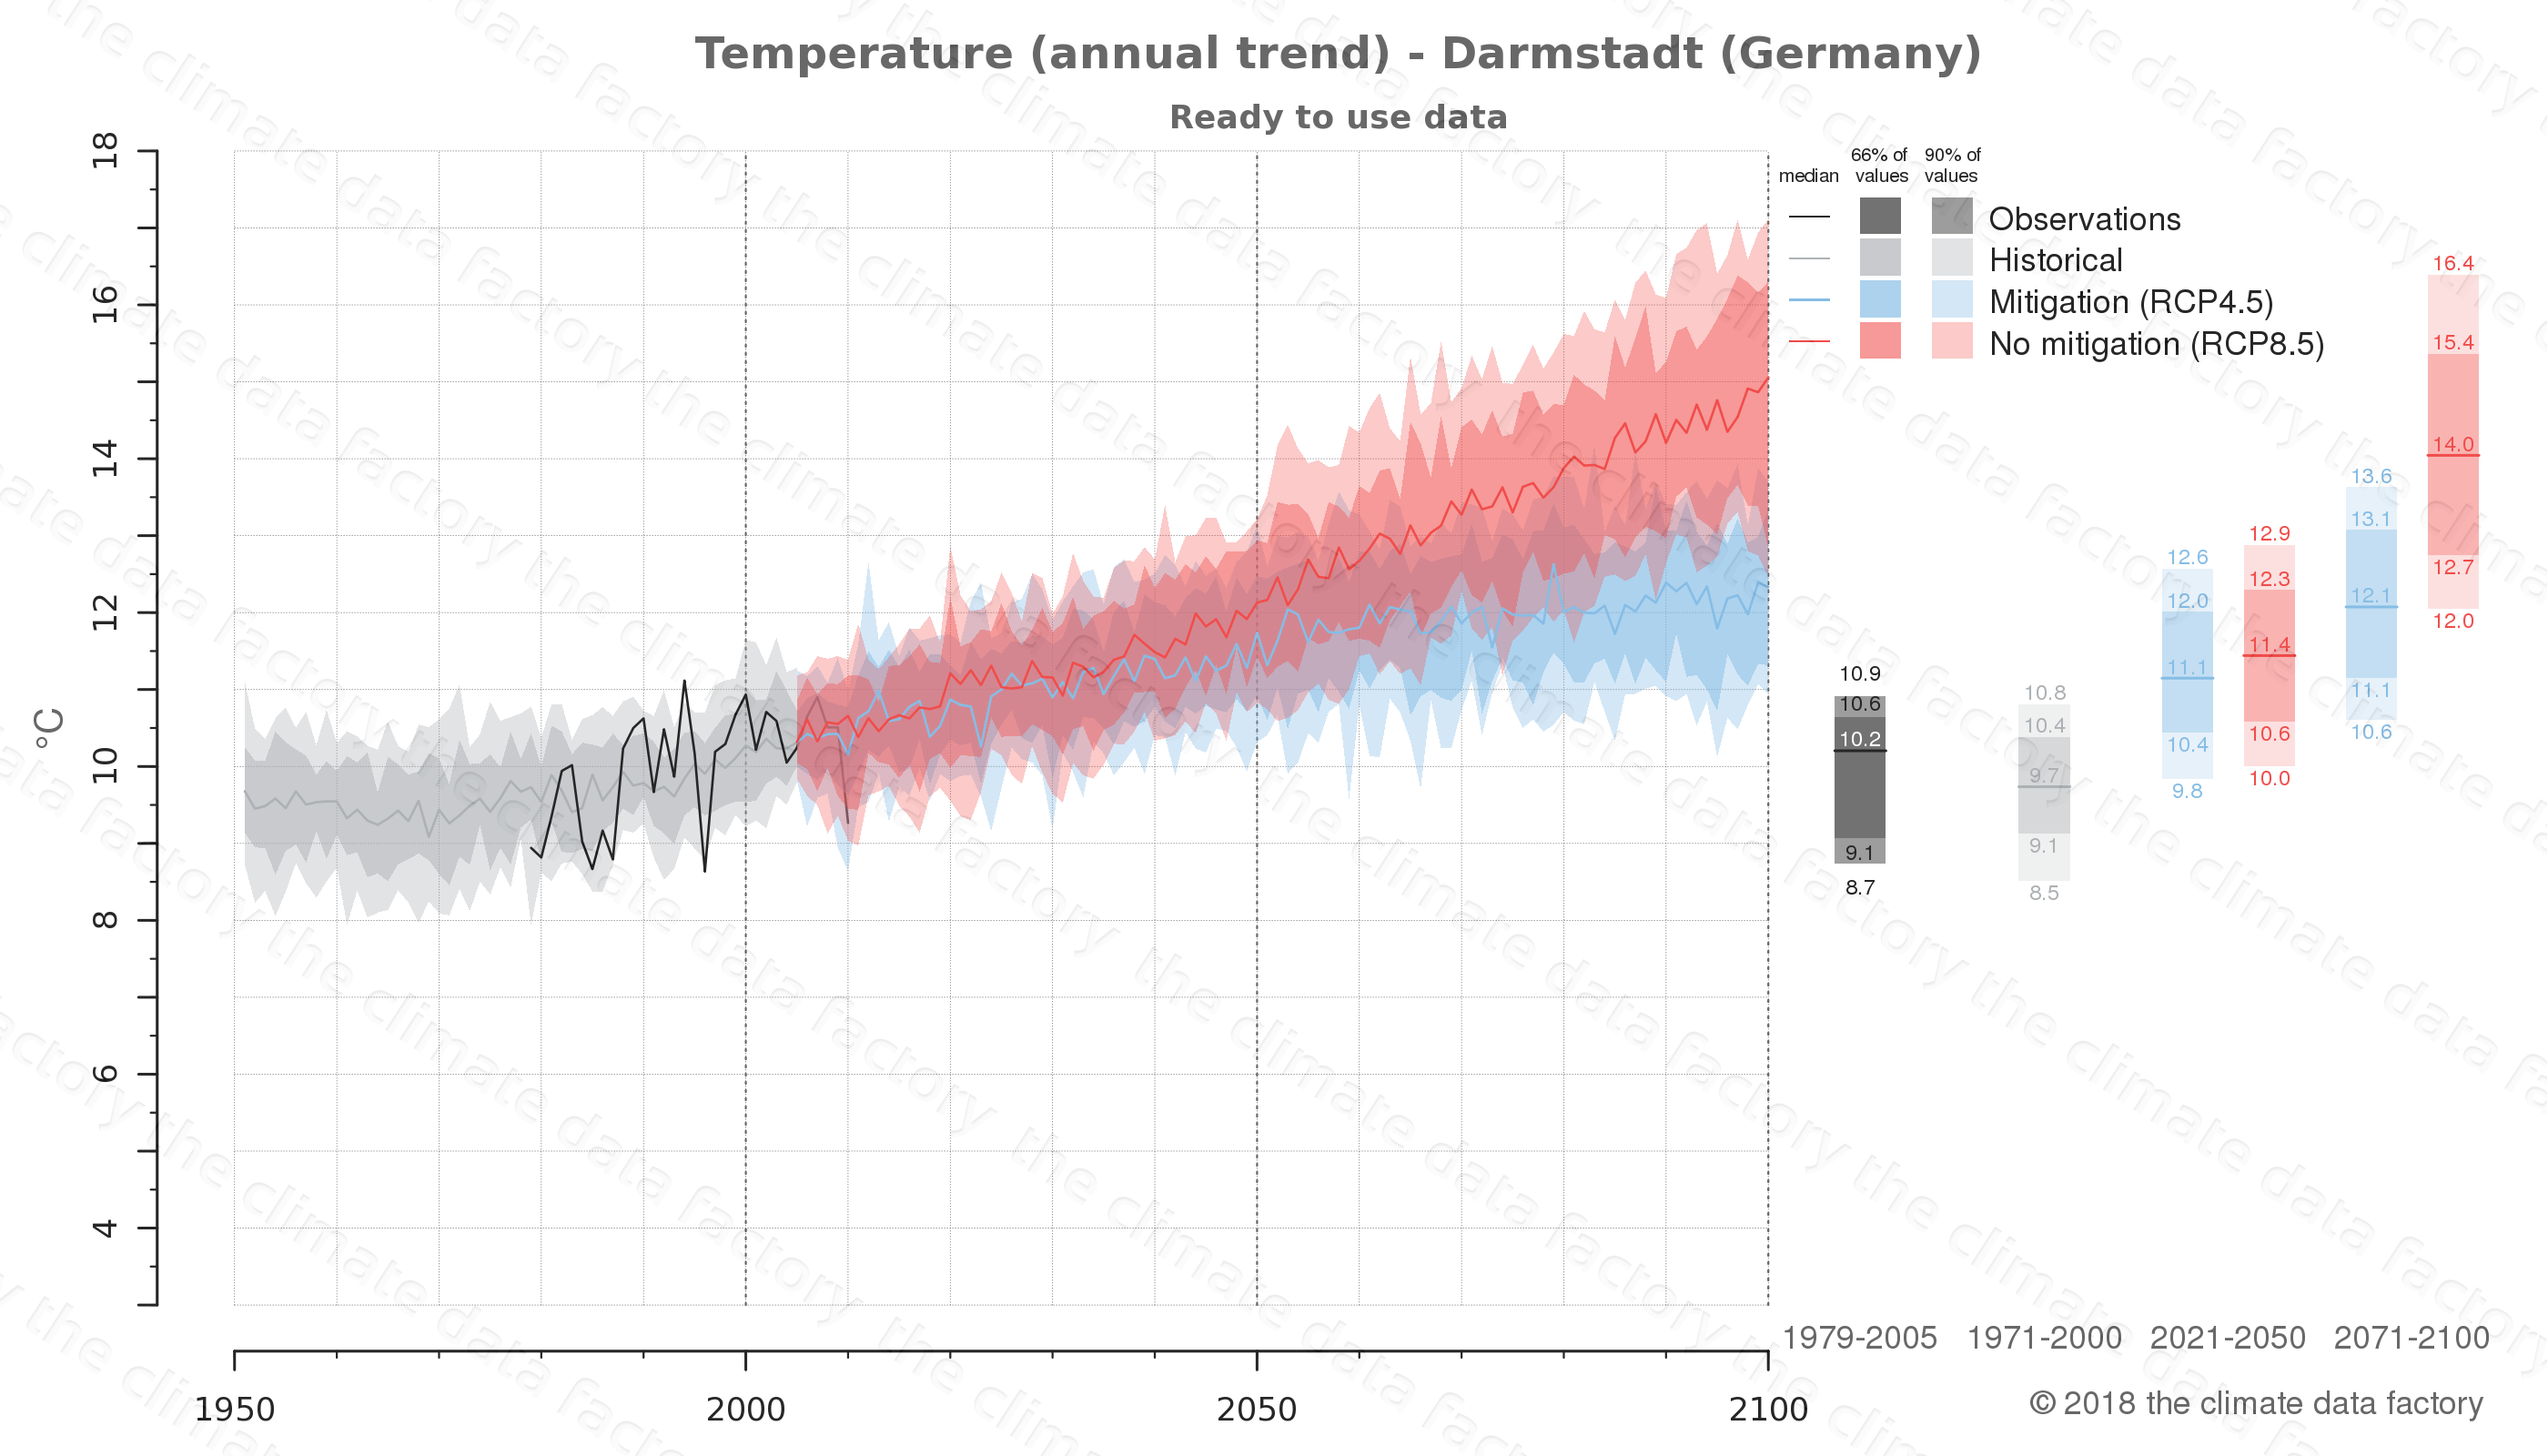 climate change data policy adaptation climate graph city data temperature darmstadt germany